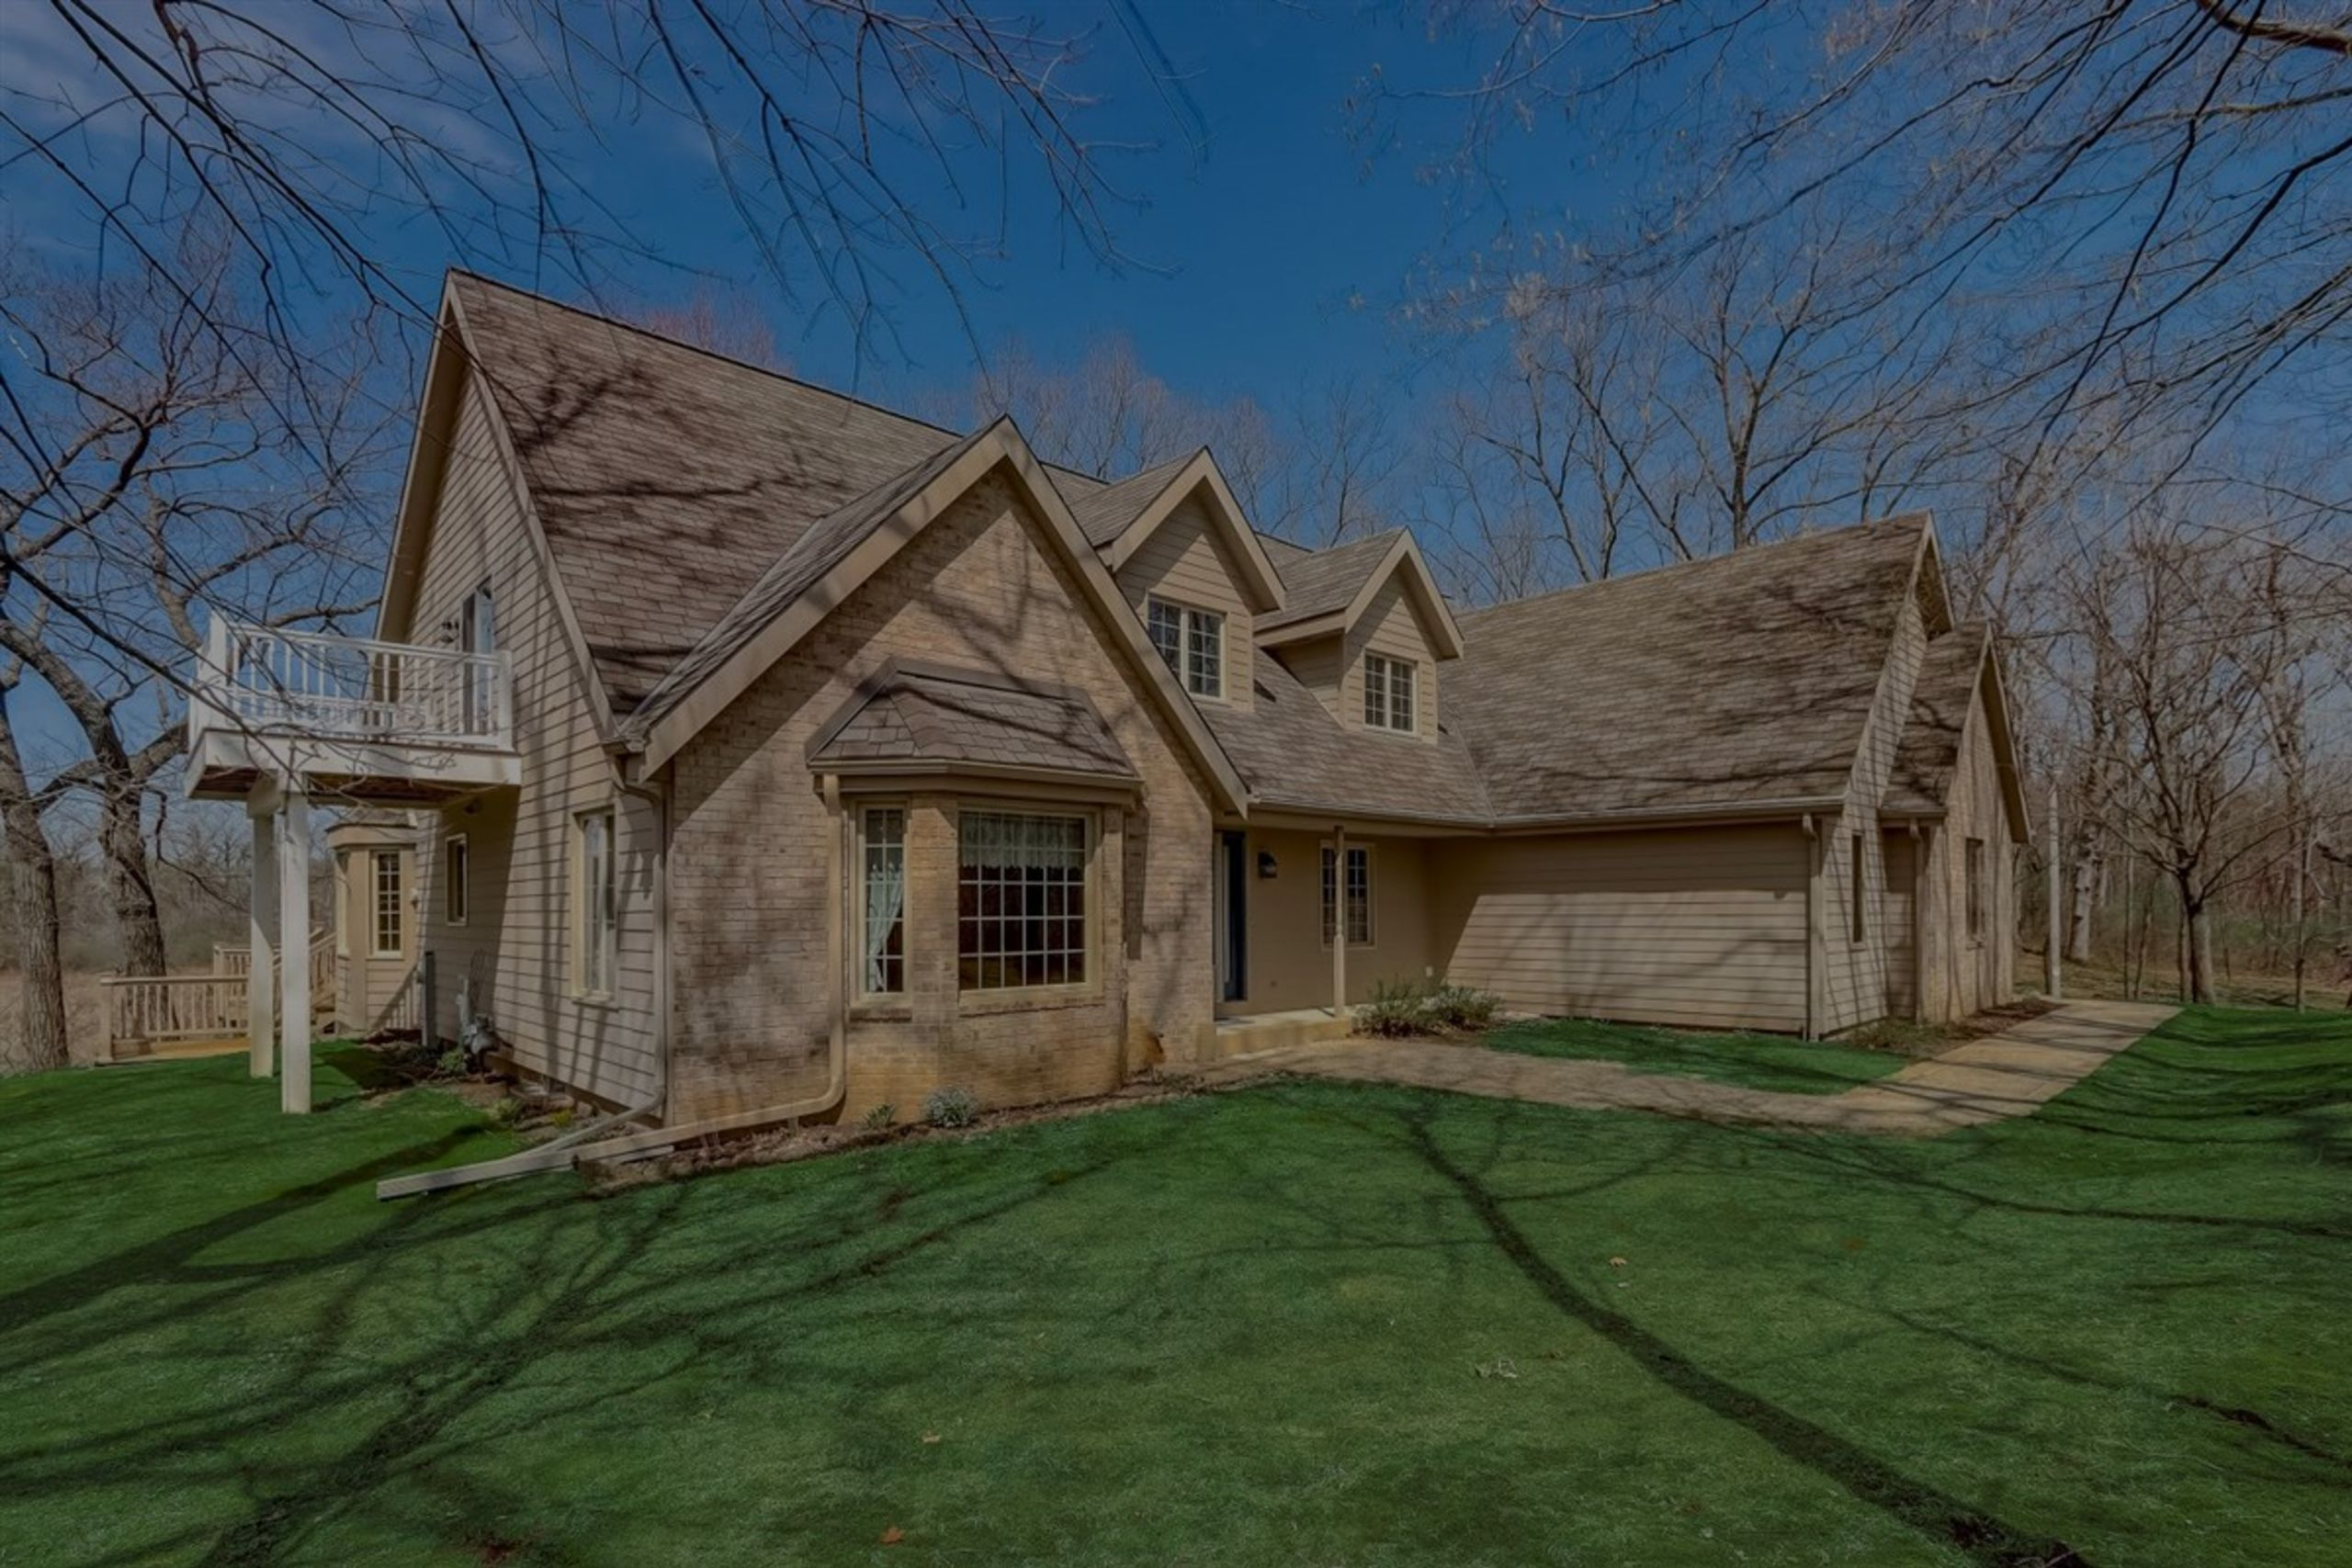 COMING SOON – 28600 Gawin Dr. Waterford, Wisconsin 53185